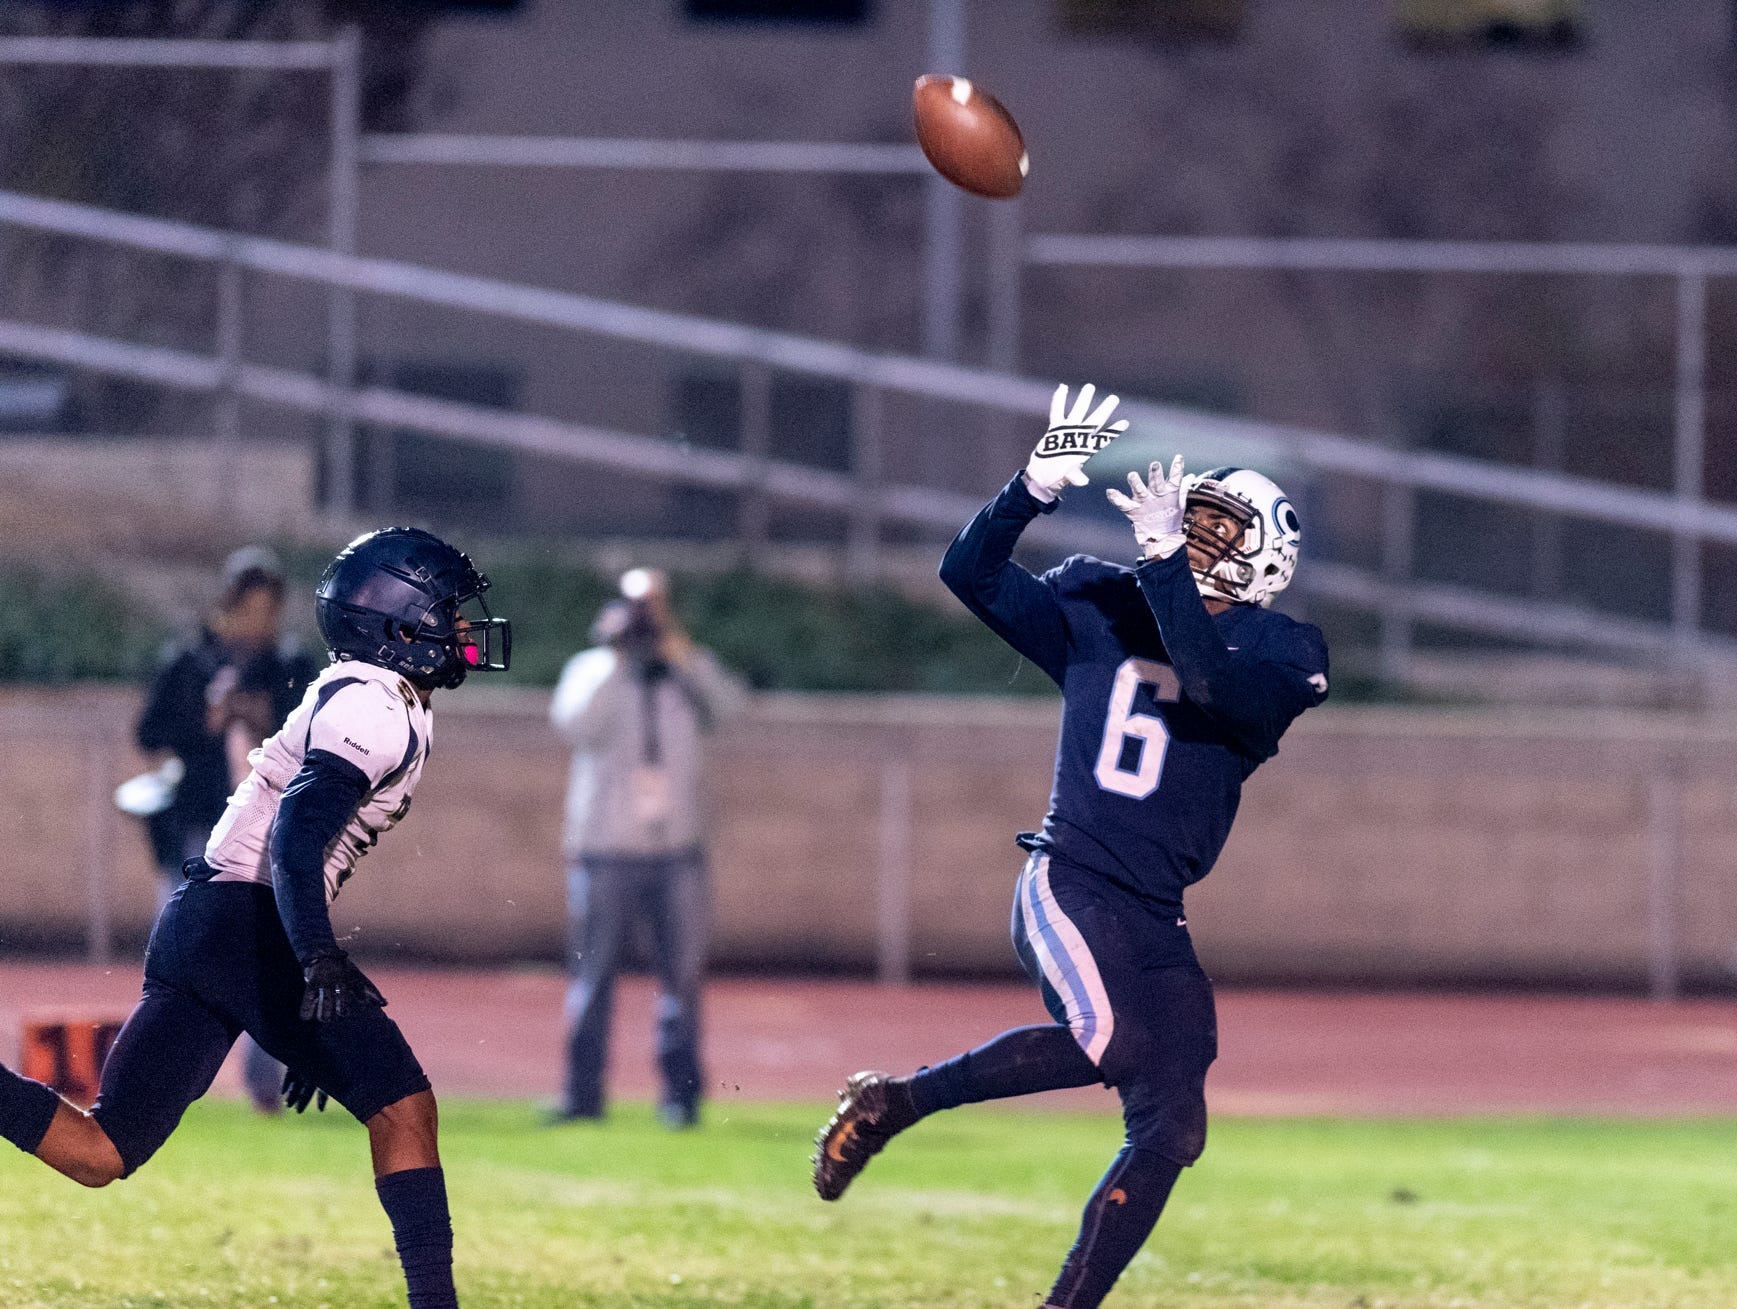 Central Valley Christian's Brian Noel takes a pass from Eric Dragt ahead of Morse's Michael Wright before scoring in a CIF SoCal Regional Championship Bowl Game on Friday, November 30, 2018.